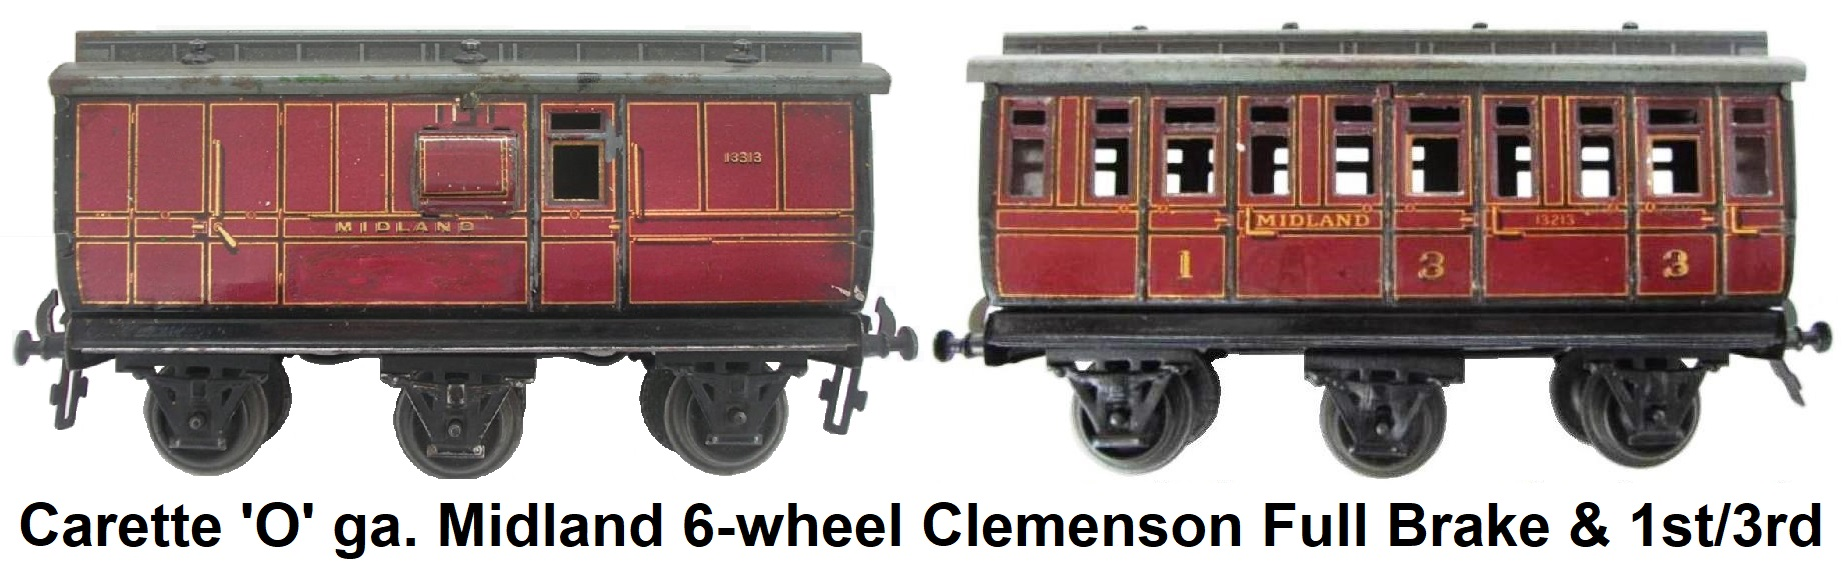 Carette 'O' gauge Midland 6 Wheeled Clemenson Clerestory Roof First Third Passenger Coach